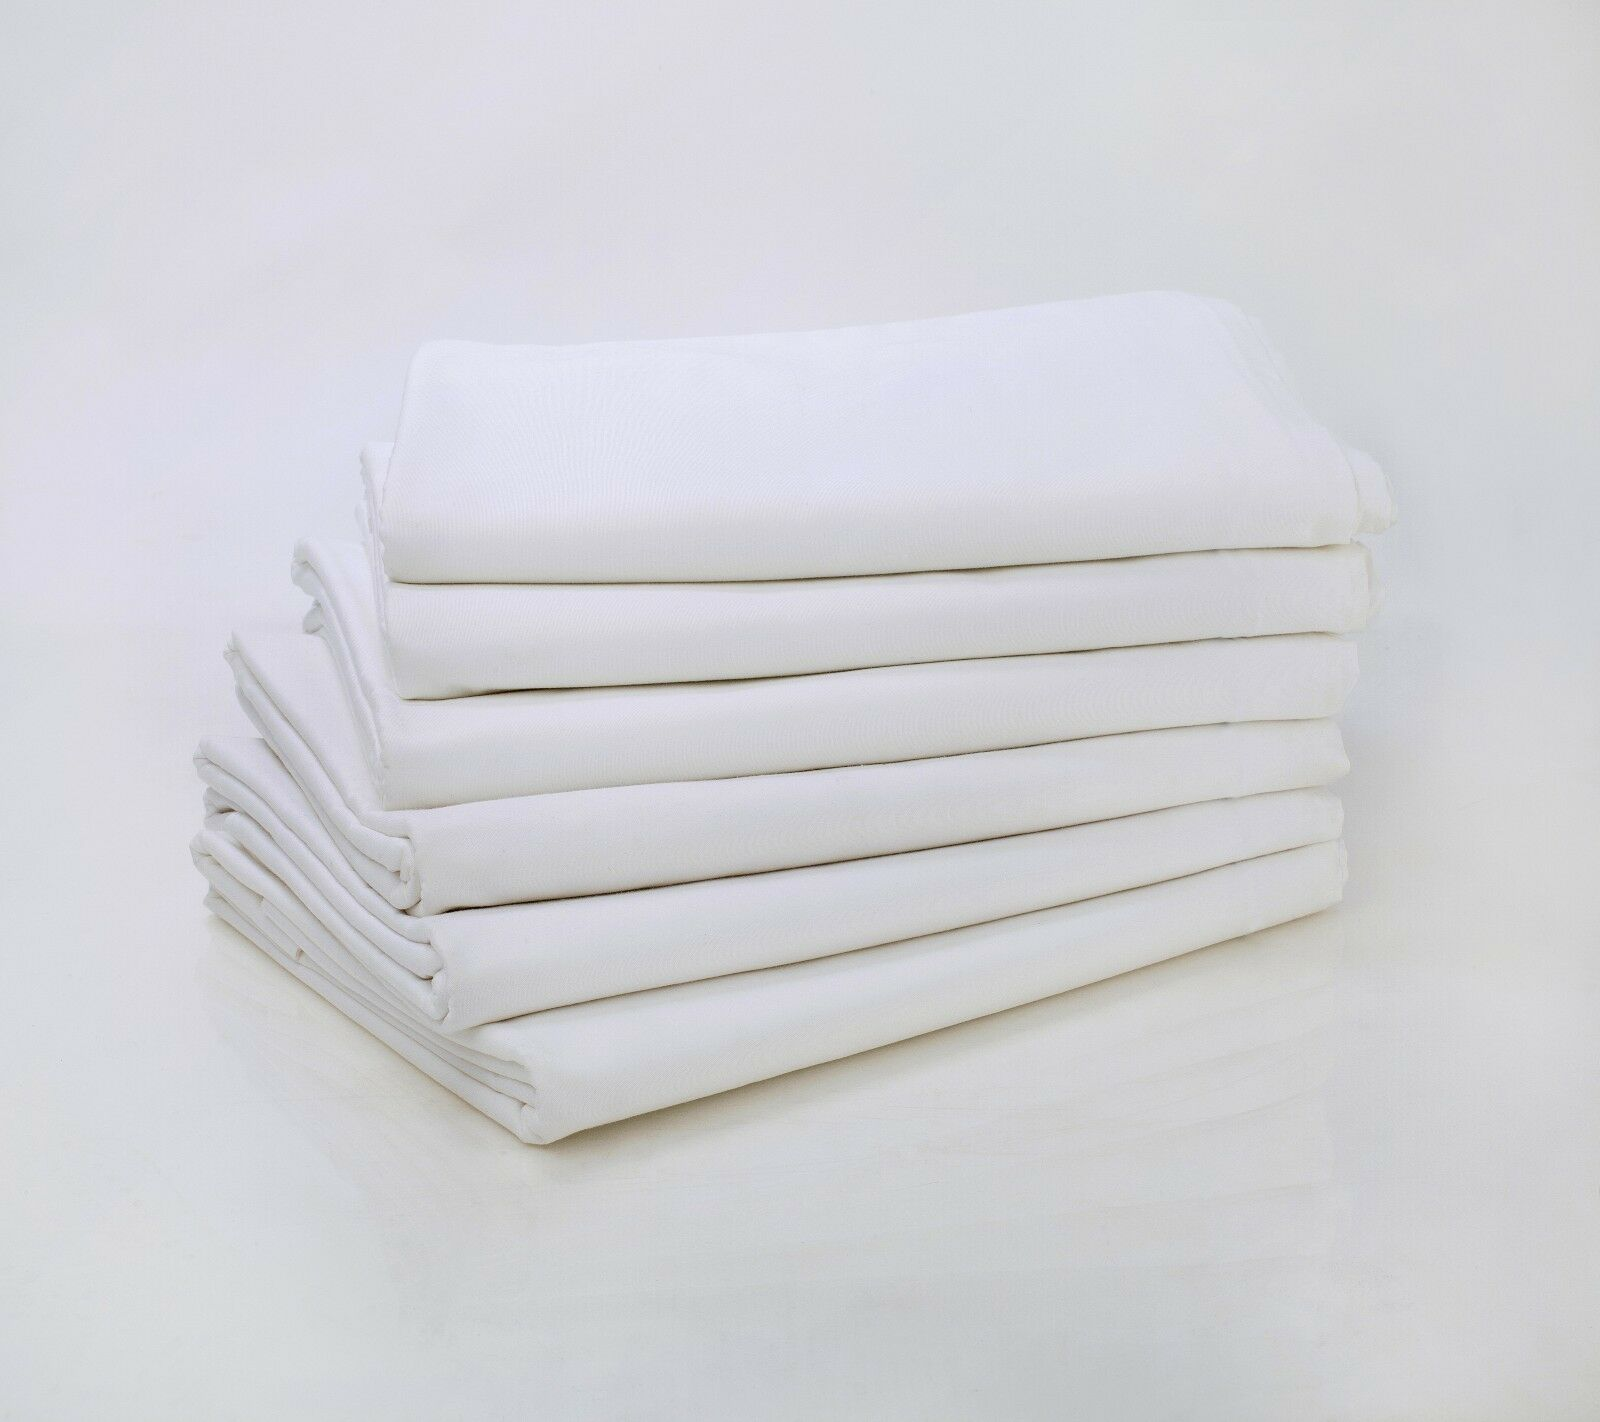 12 COTTON RICH WHITE FULL XL SIZE 81X115 FLAT RESORTS HOTEL BED SHEETS T-200 CVC